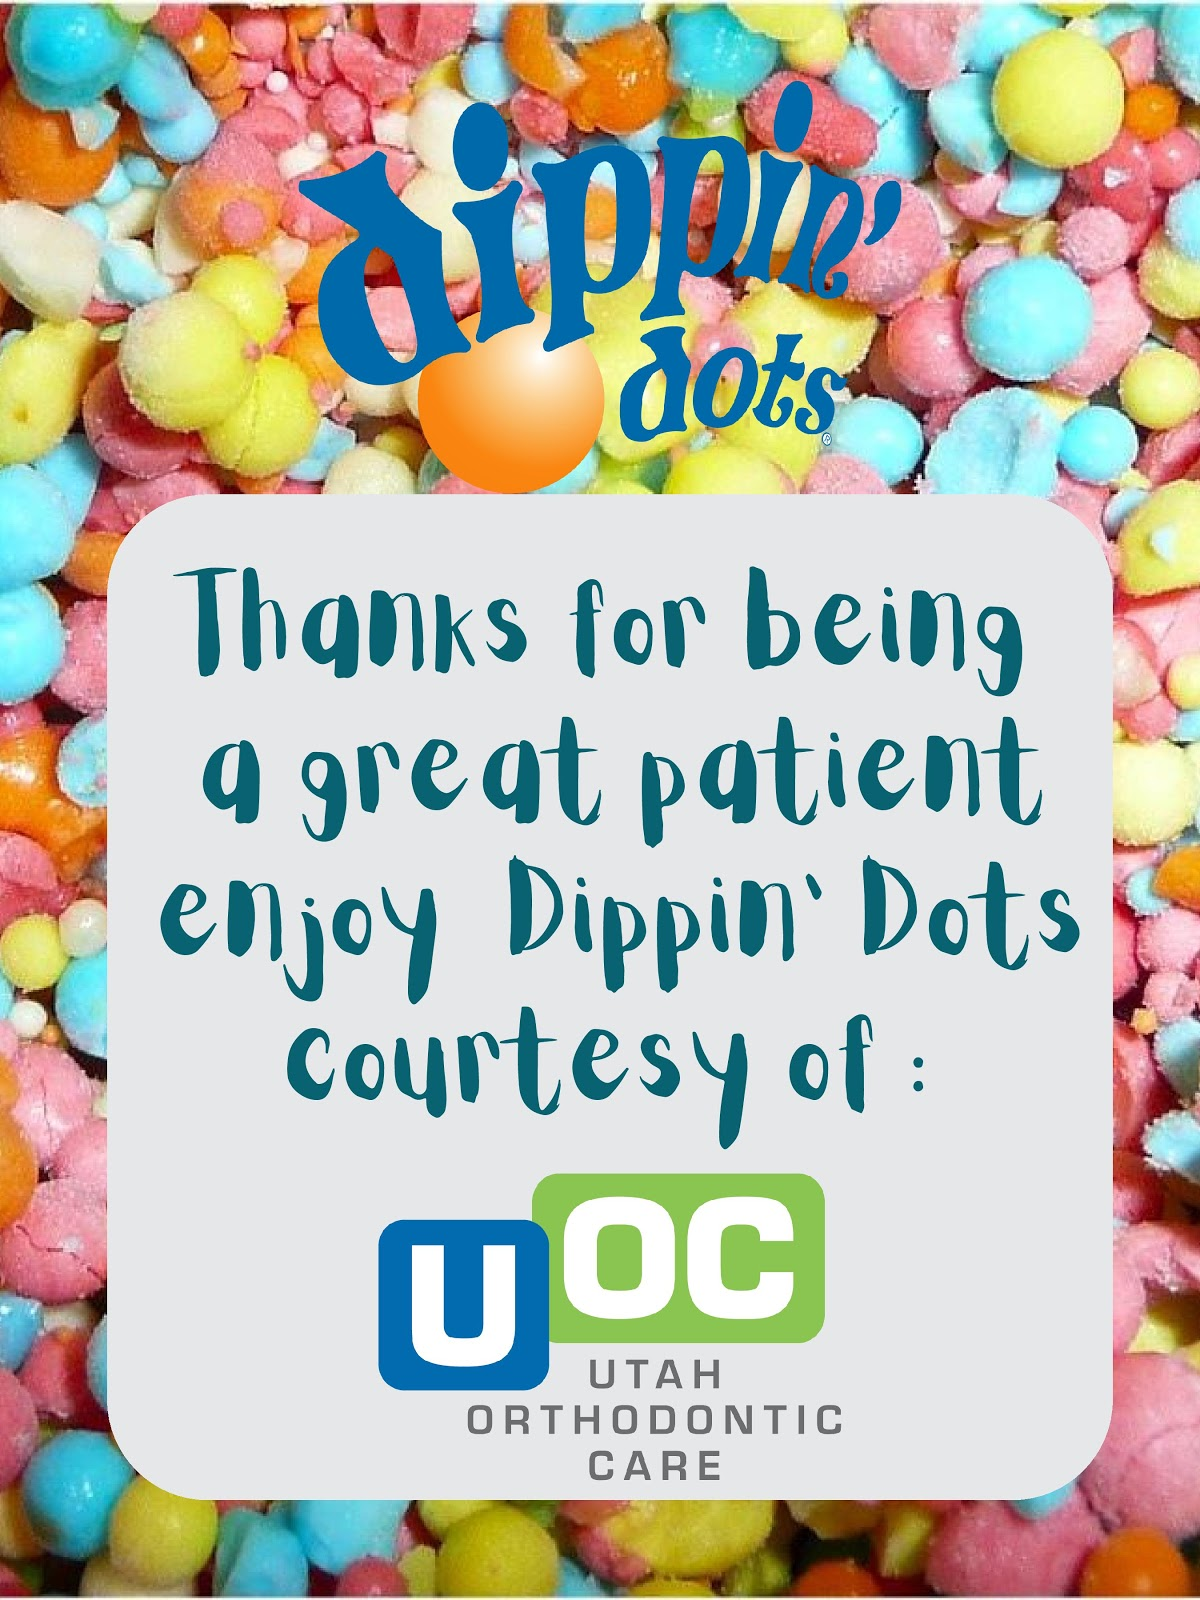 Utah Orthodontic Care Introduces: Dippin' Dot Days!